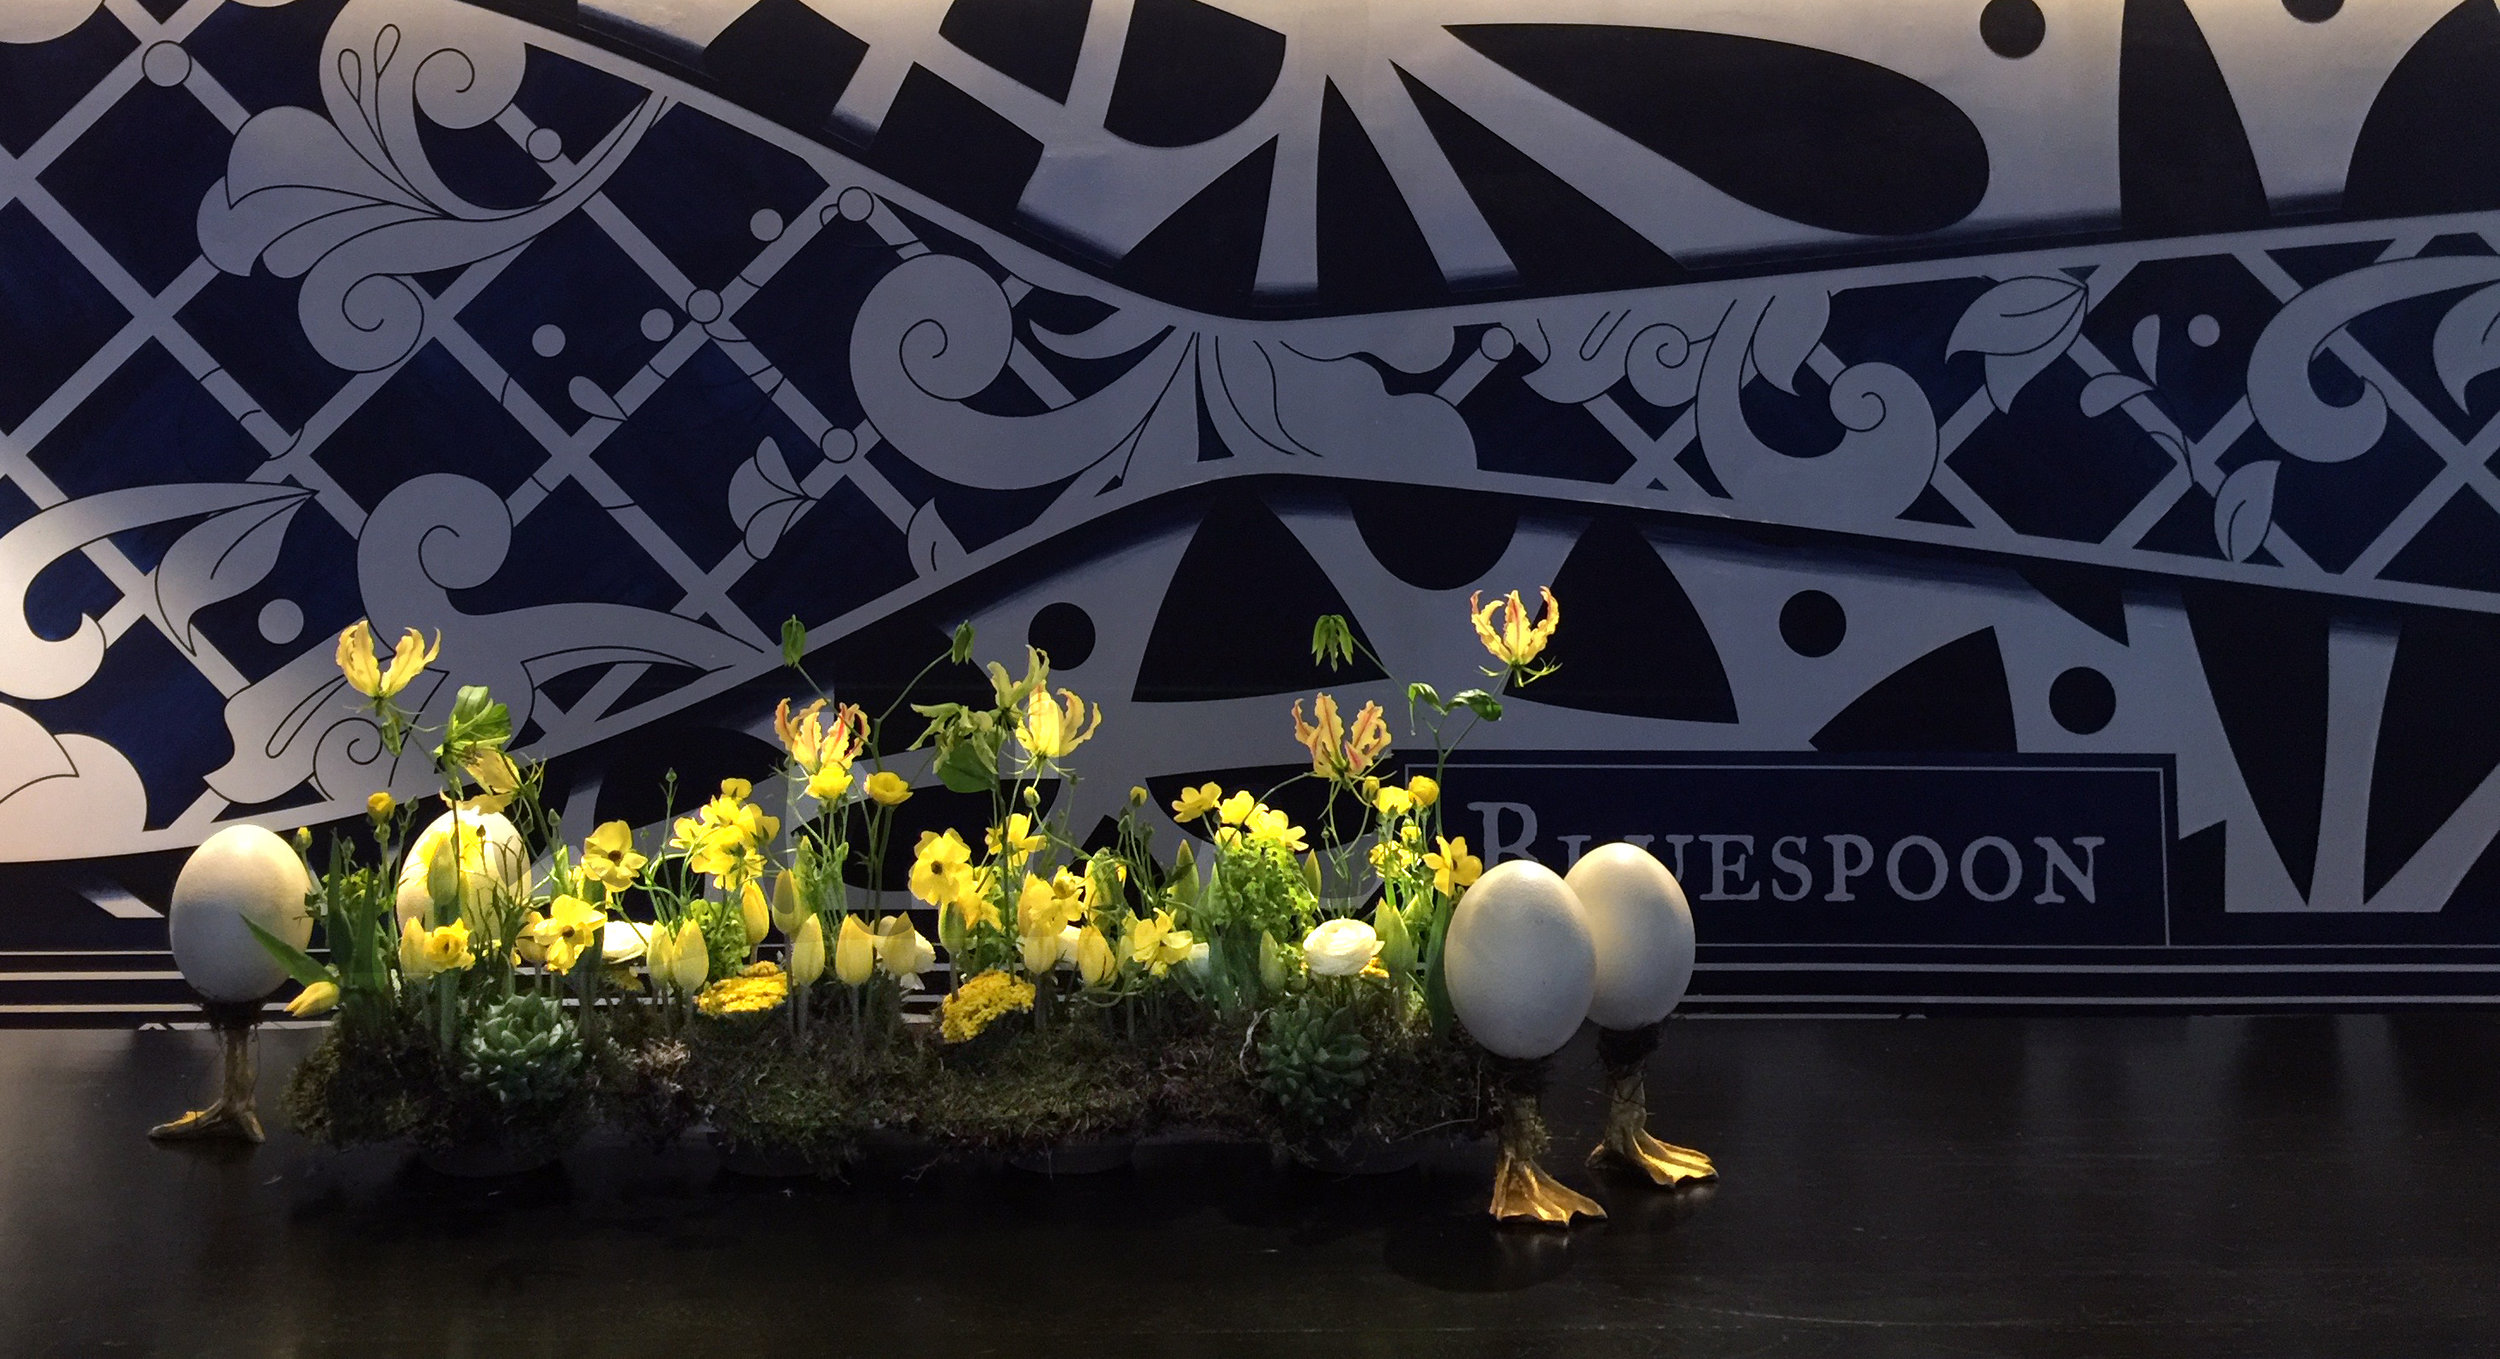 . . . . . #apbloem #florist #amsterdam #bloemist #kerkstraat #bloemen #stijl #styling #floristry #bloemenwinkel #floral #artisan #boutique #kleur #colour #lifestyle #lente #spring #dsfloral #nature #eggs #easter #tulips #luxury #marcelwanders #paasdag #pasen #chocolate #dsfloral